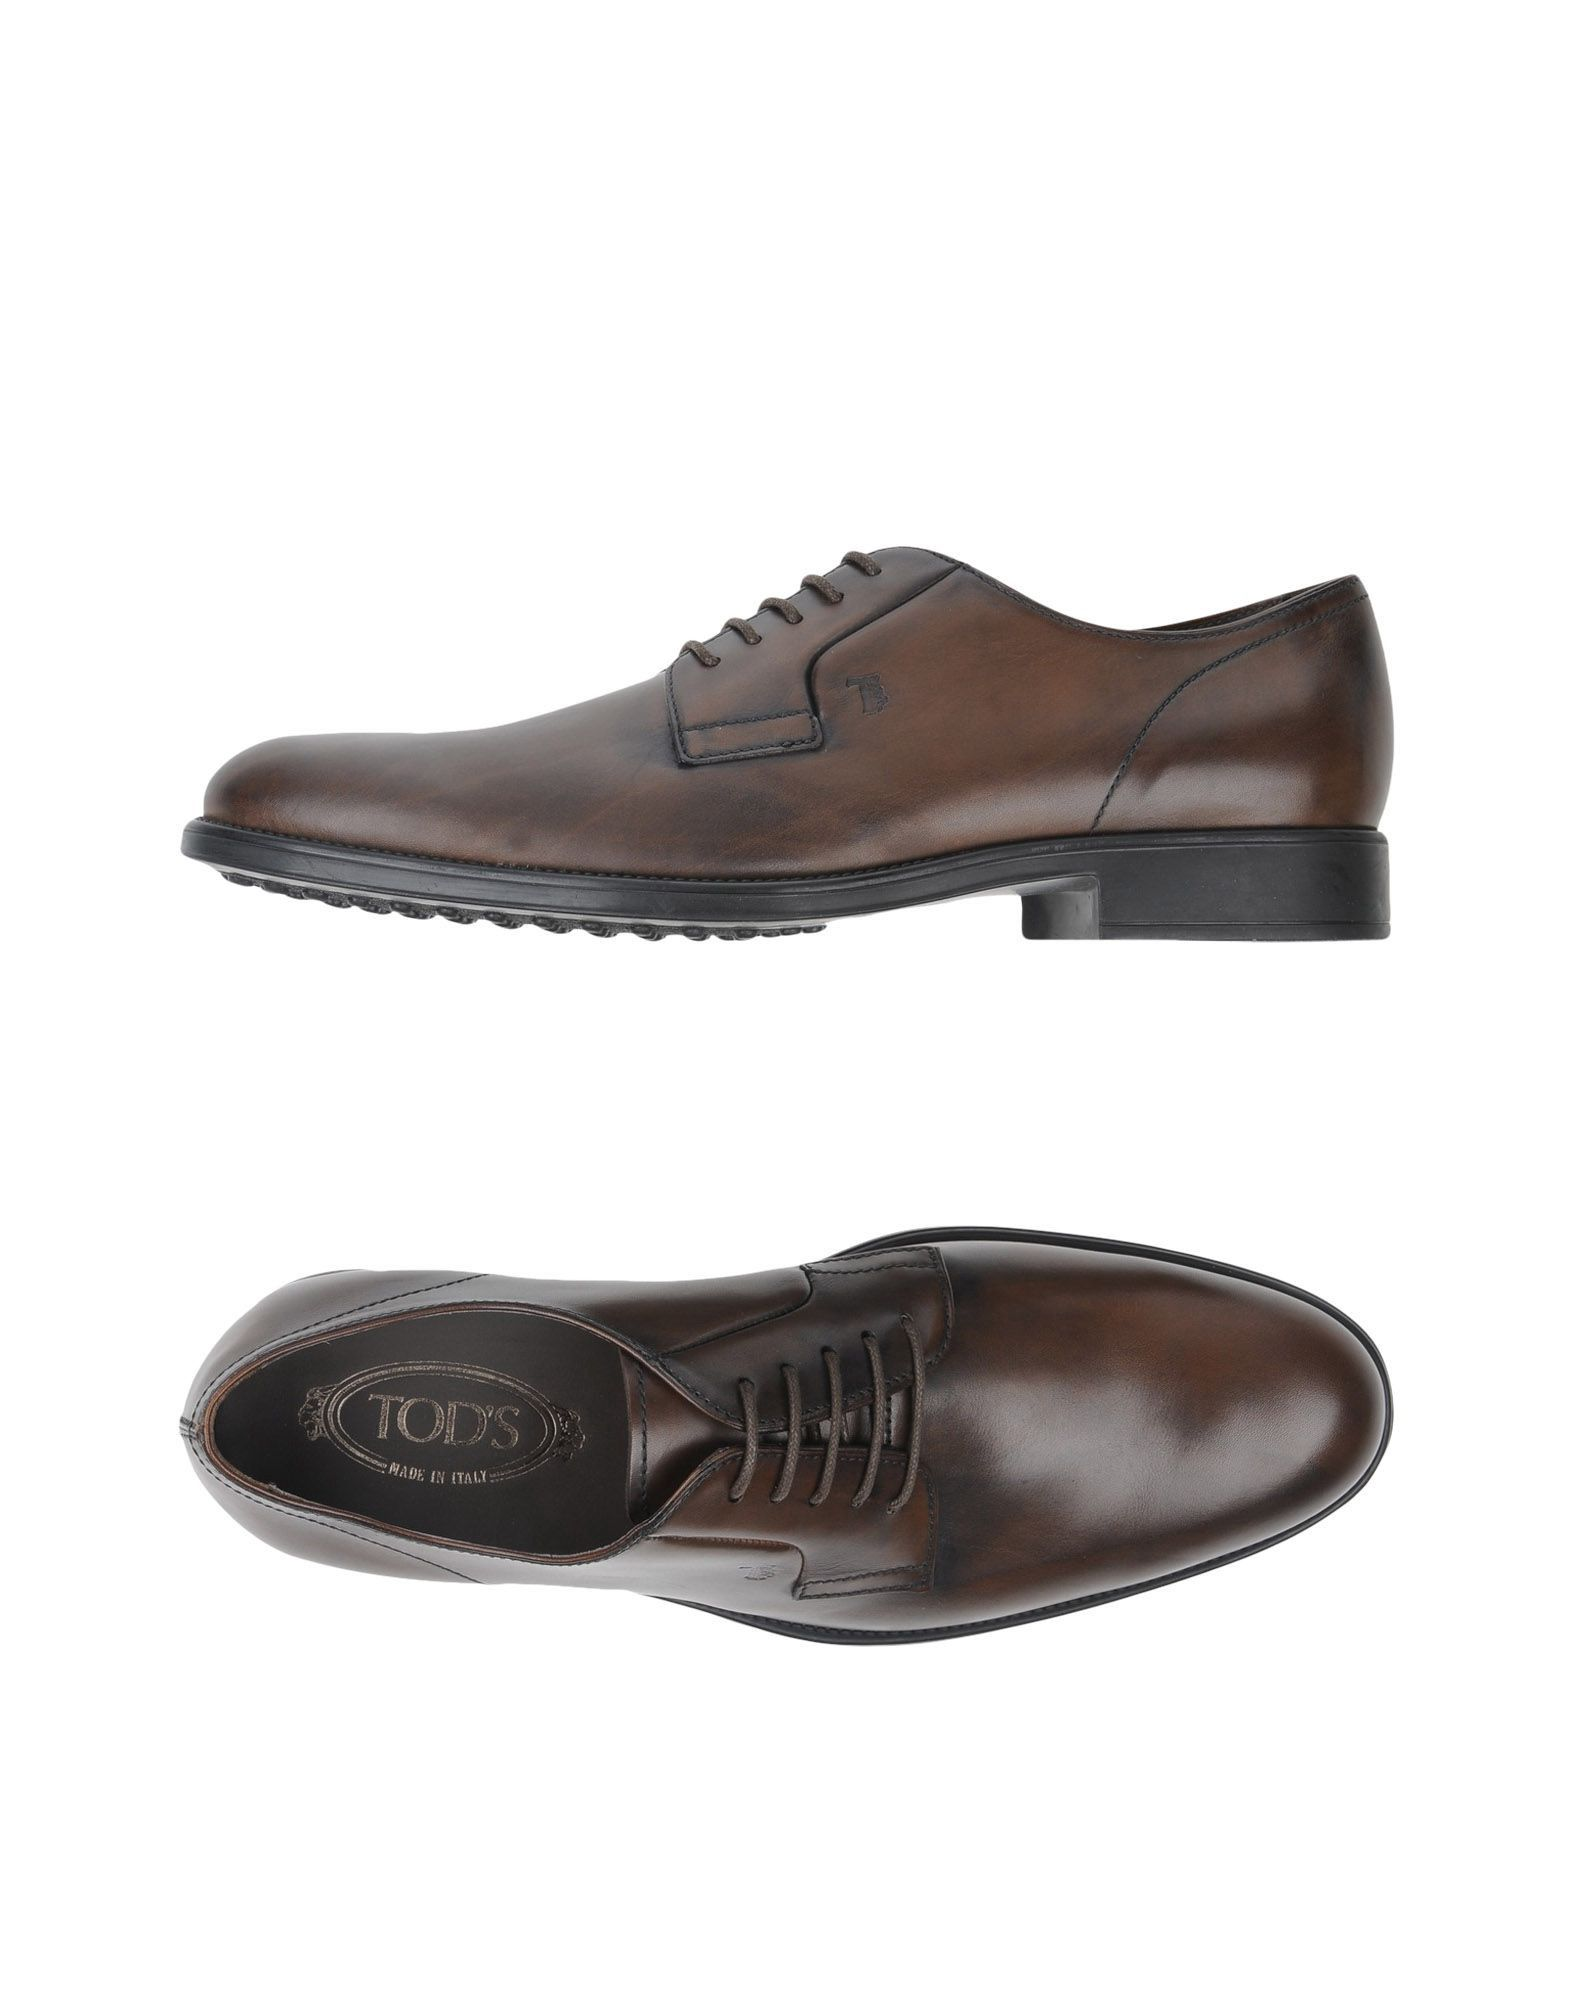 4b1cc469c3 TOD'S Lace-up shoe. #tods #shoes # Brown Brogues, Luxury Shoes